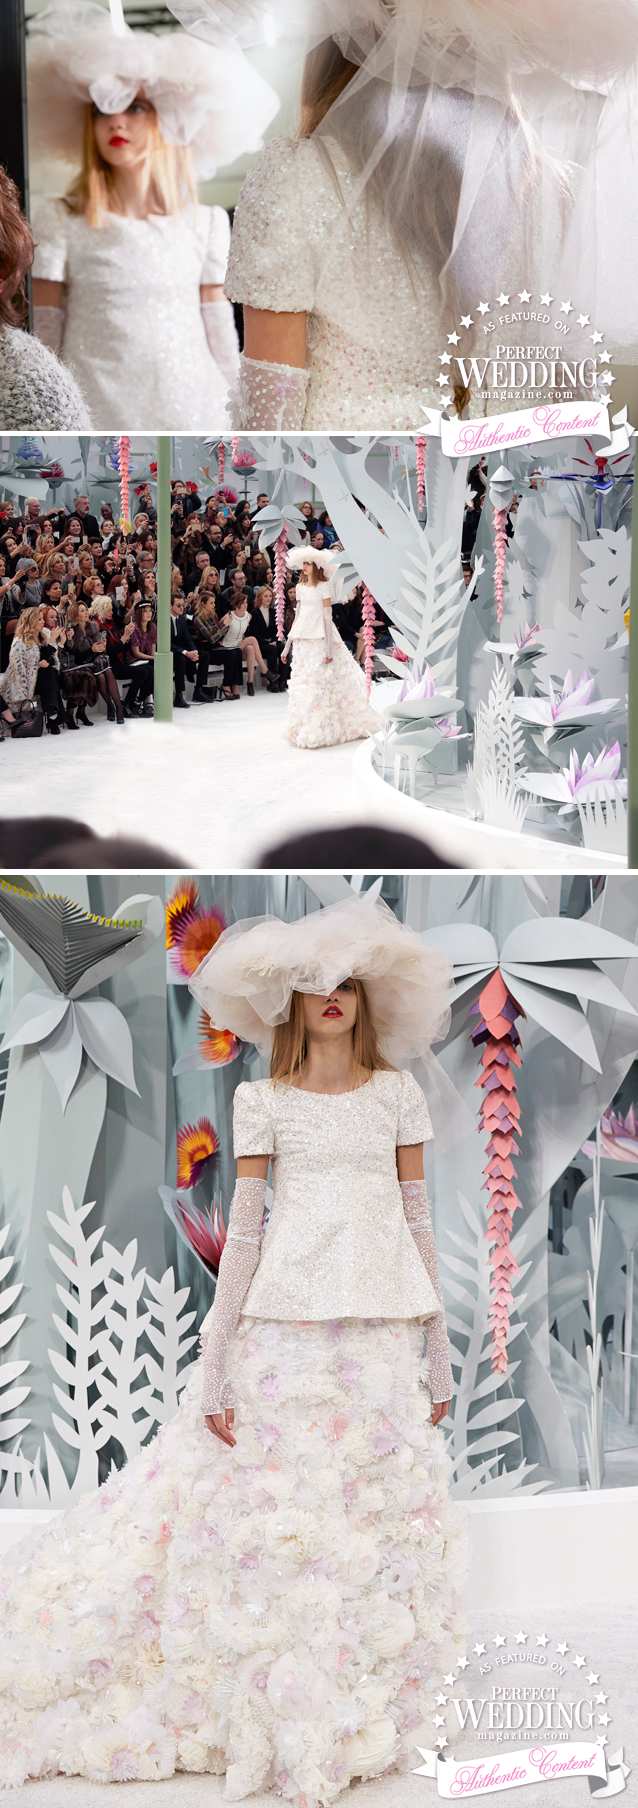 Chanel, Chanel Wedding Gown, Haute Couture Spring Summer 2015, Chanel Ateliers, Perfect Wedding magazine